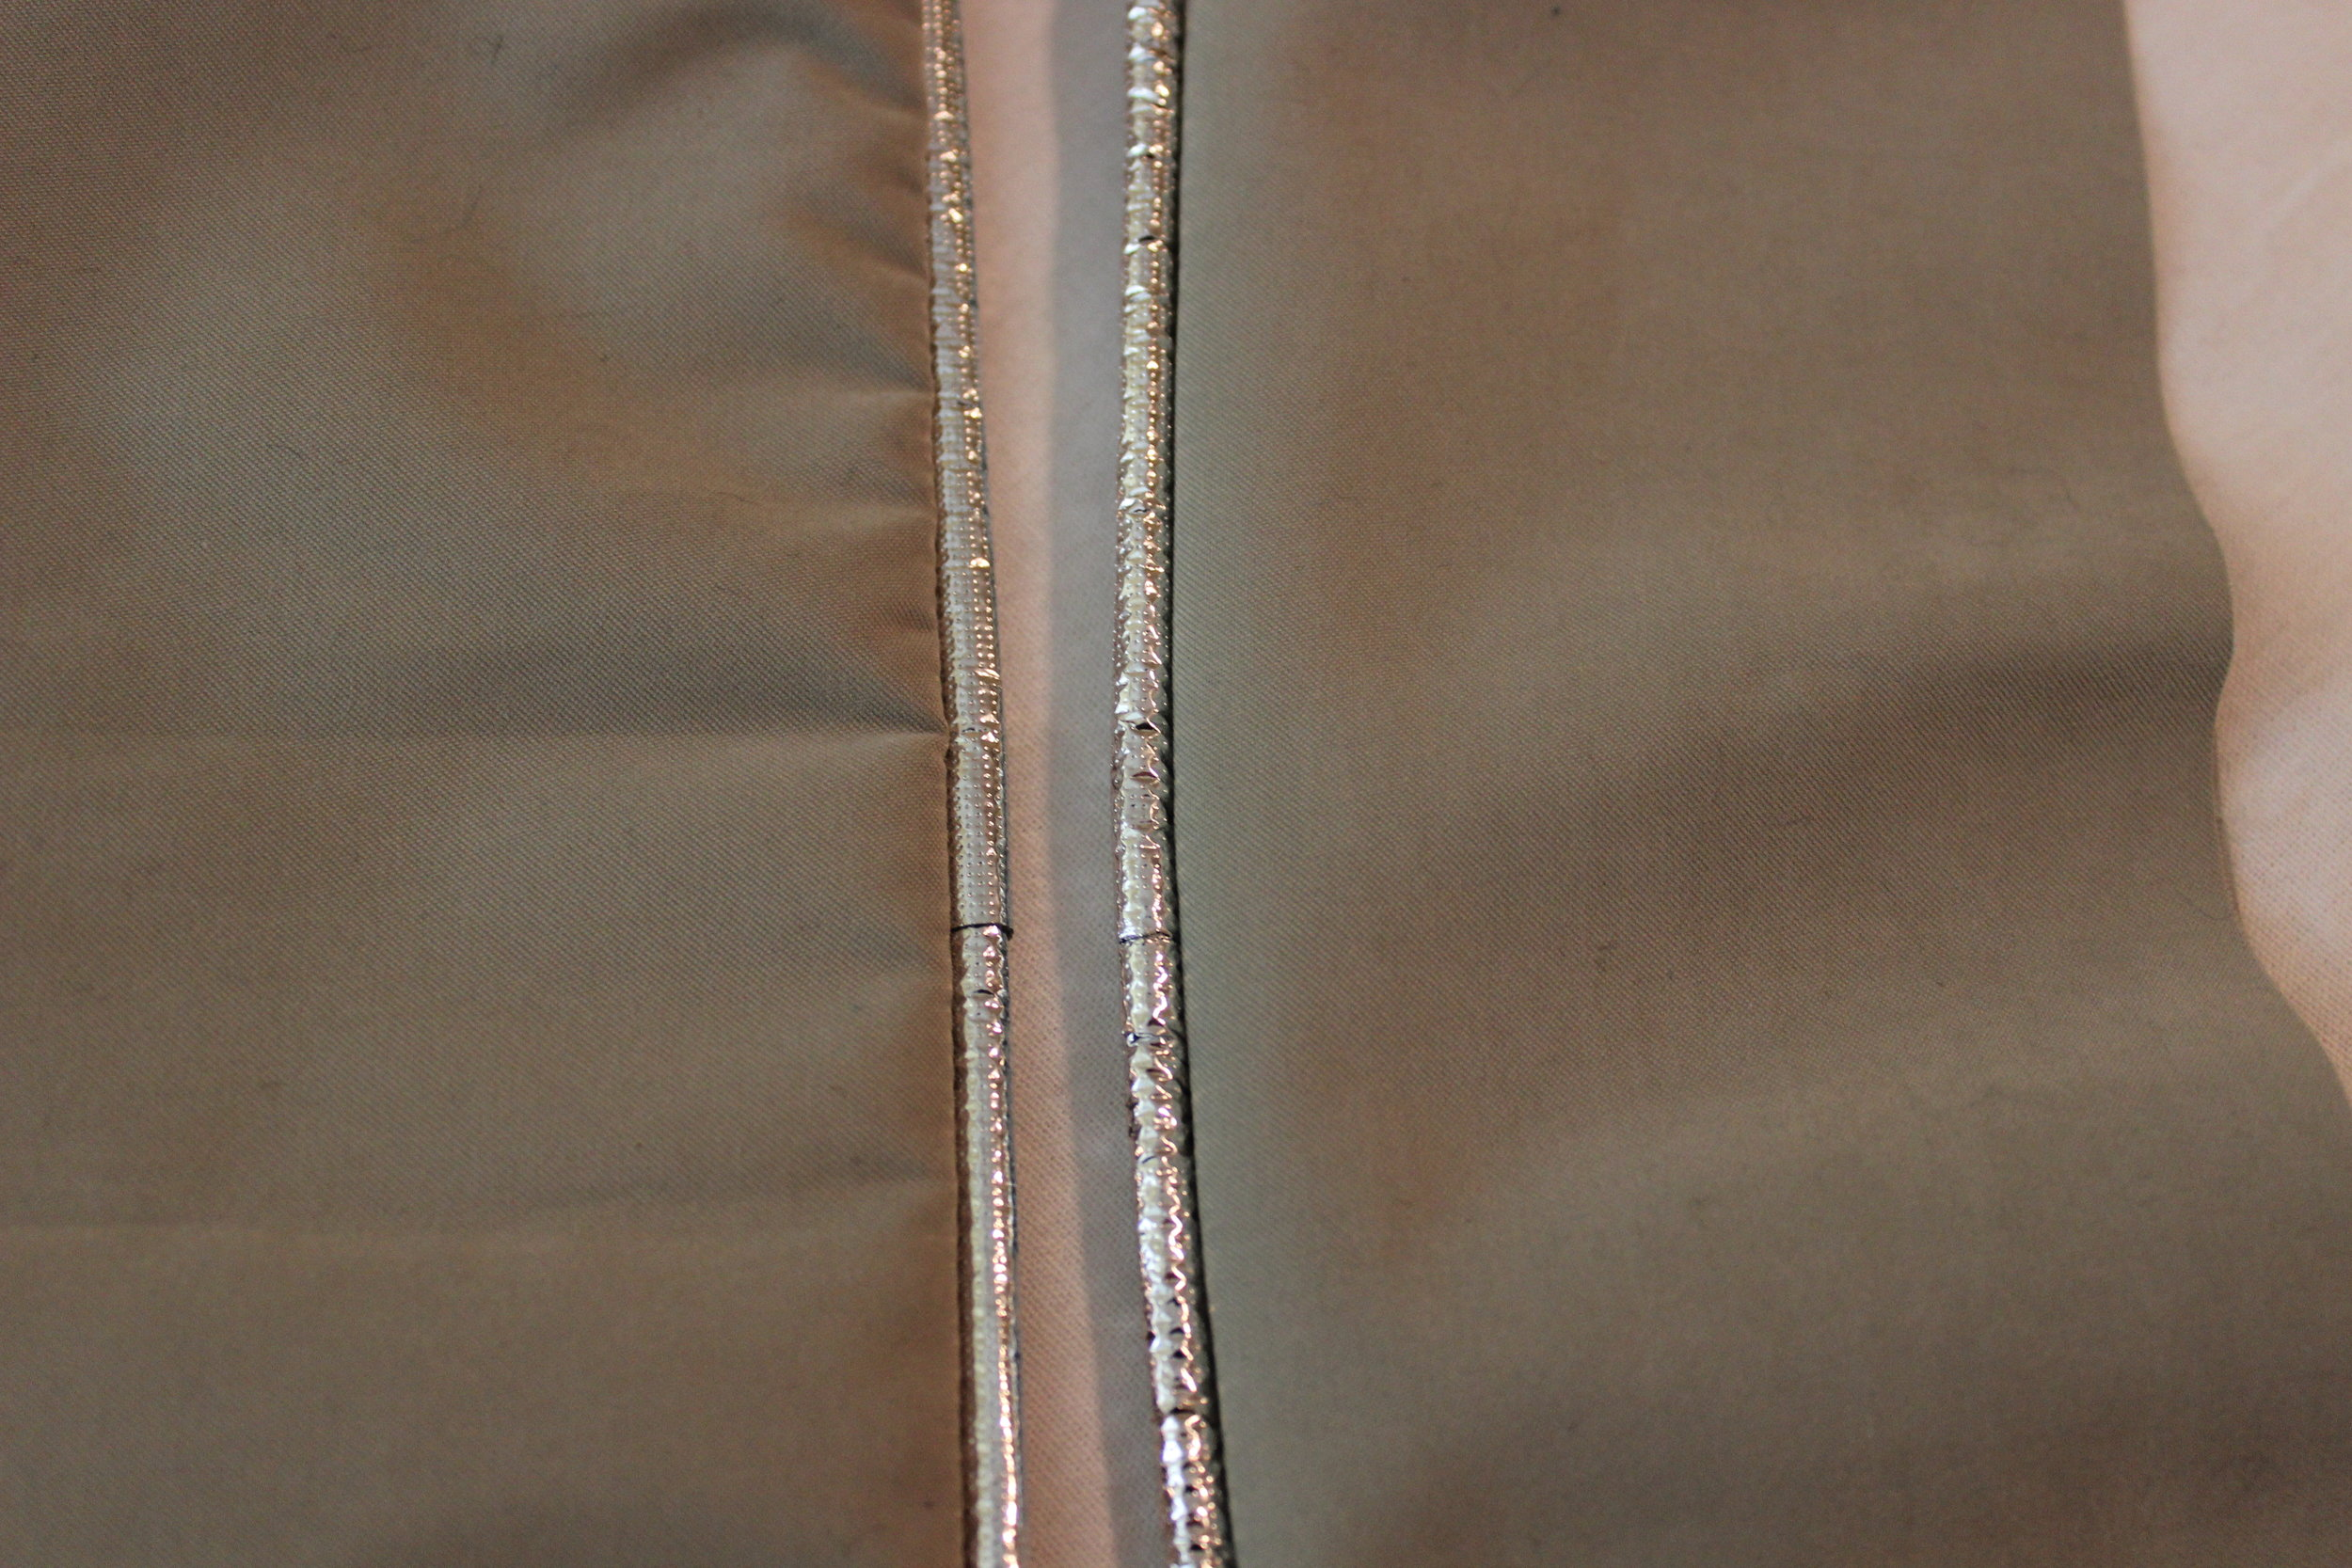 No seam on the left and with a seam on the right